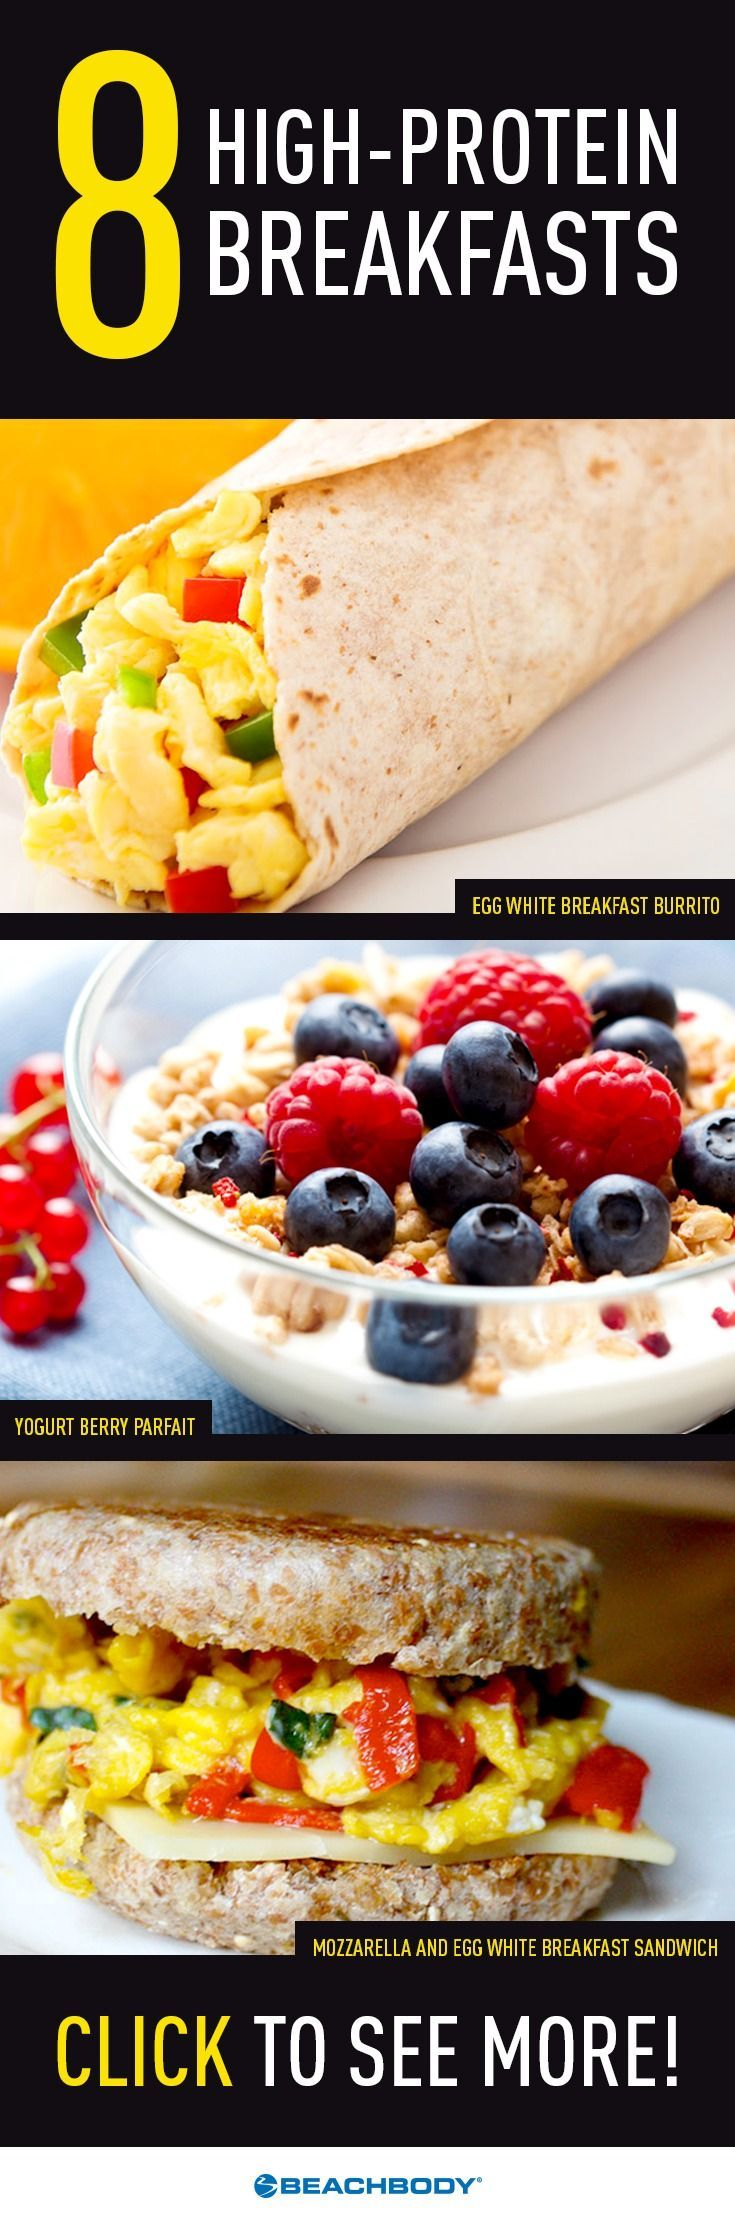 recipes for high protein low carb meals